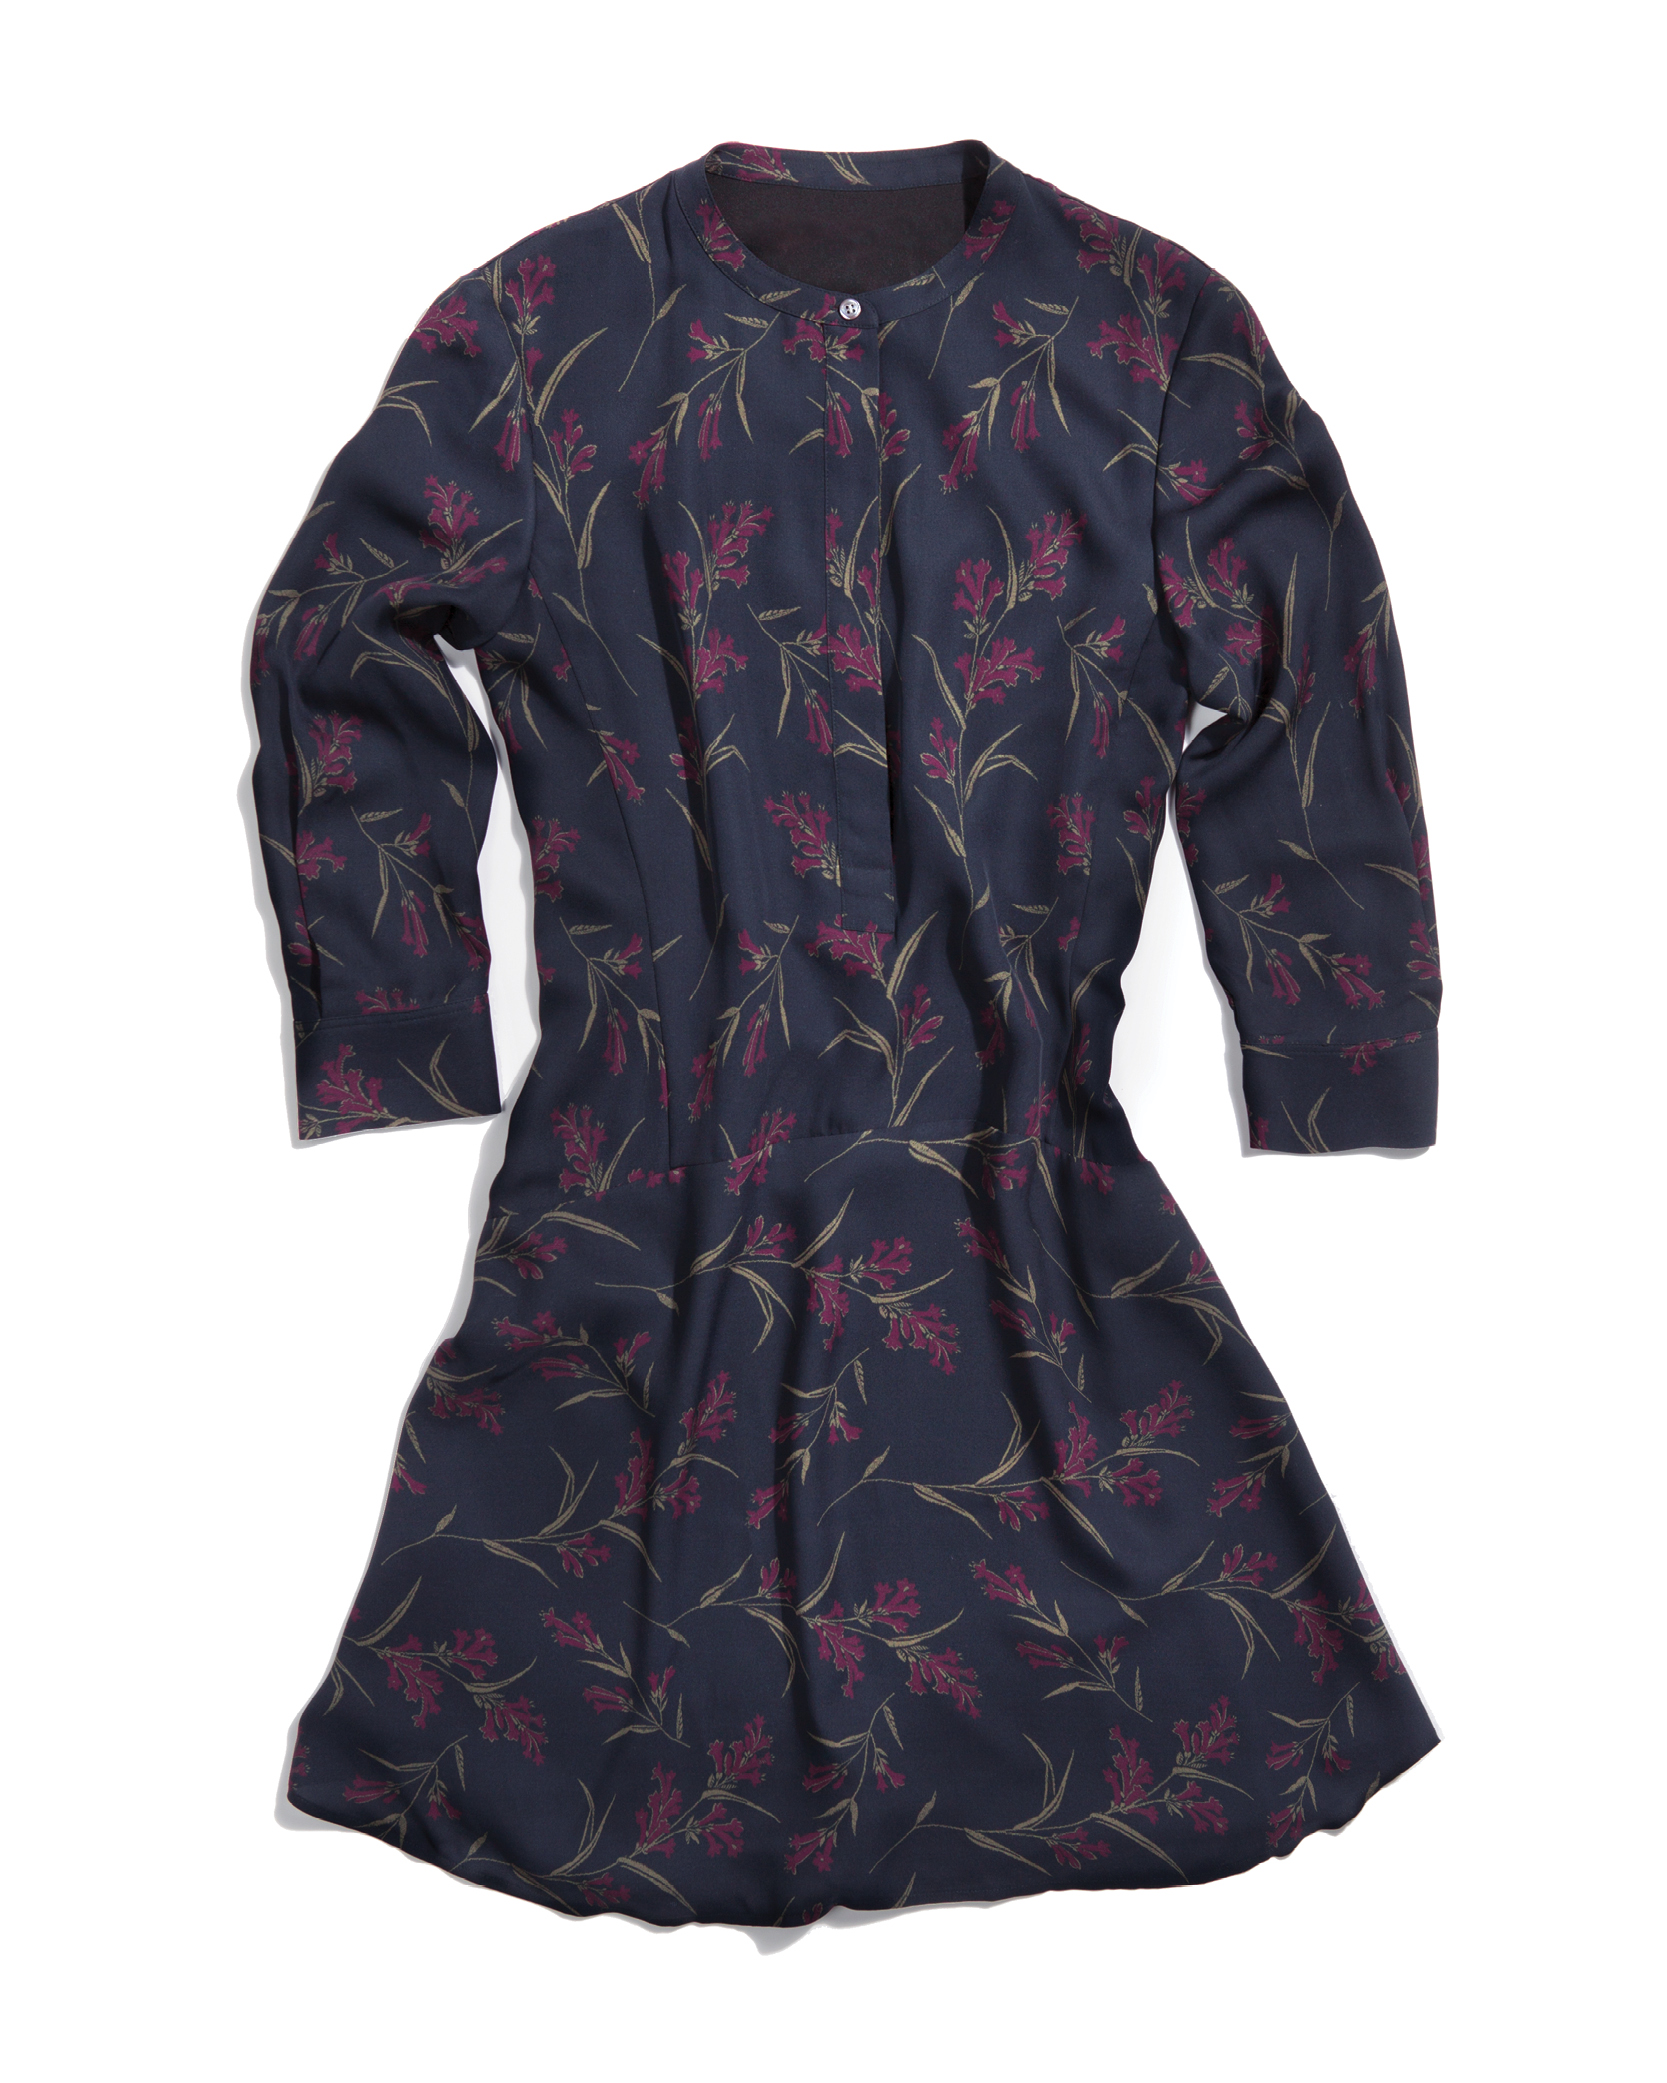 Tanger Outlets Theory floral dress